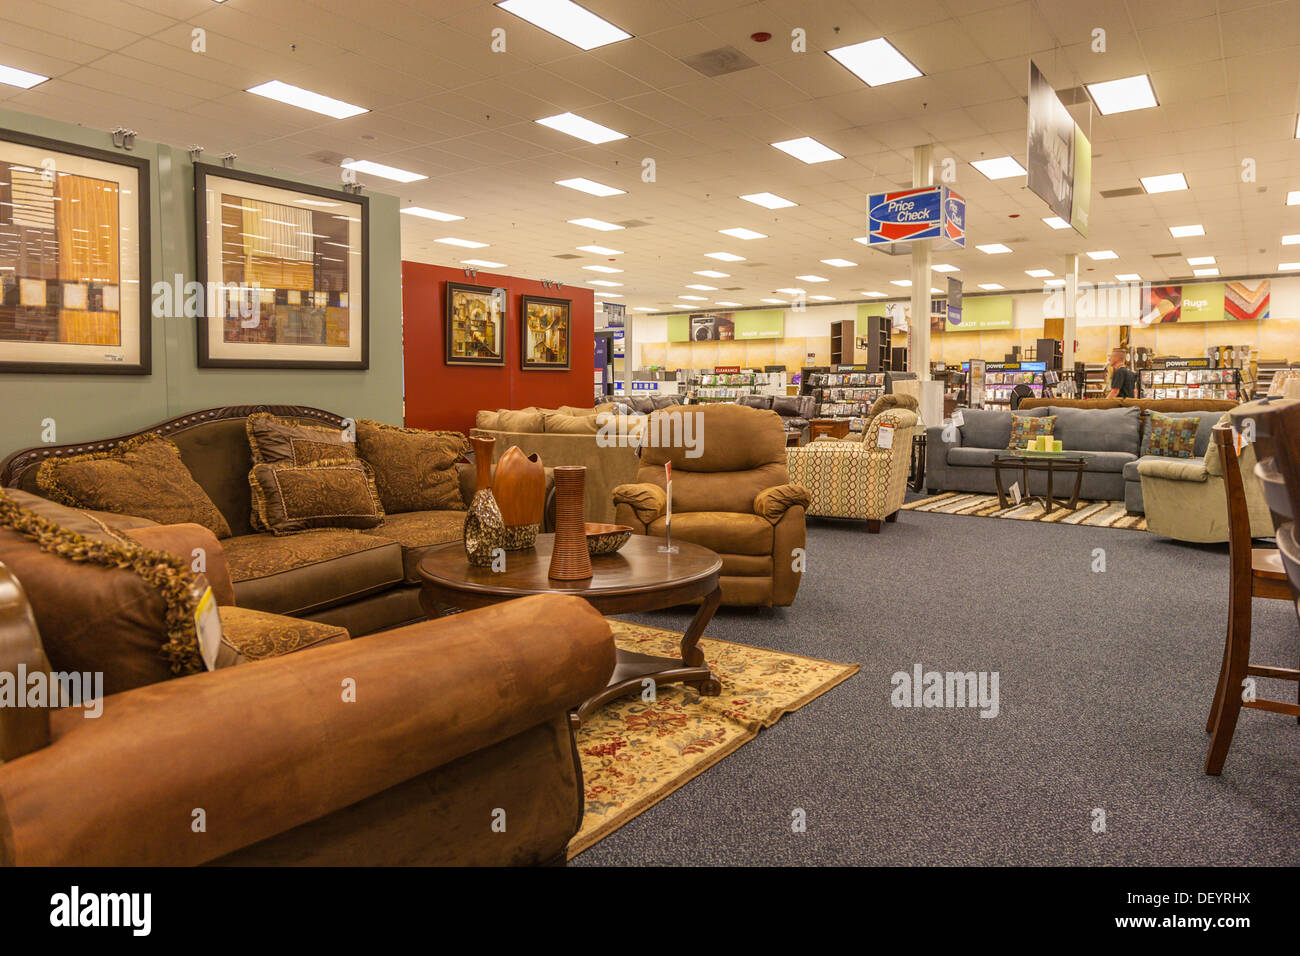 Nex Furniture Store Living Room Furniture For Sale Inside The Base Exchange Optical Archives